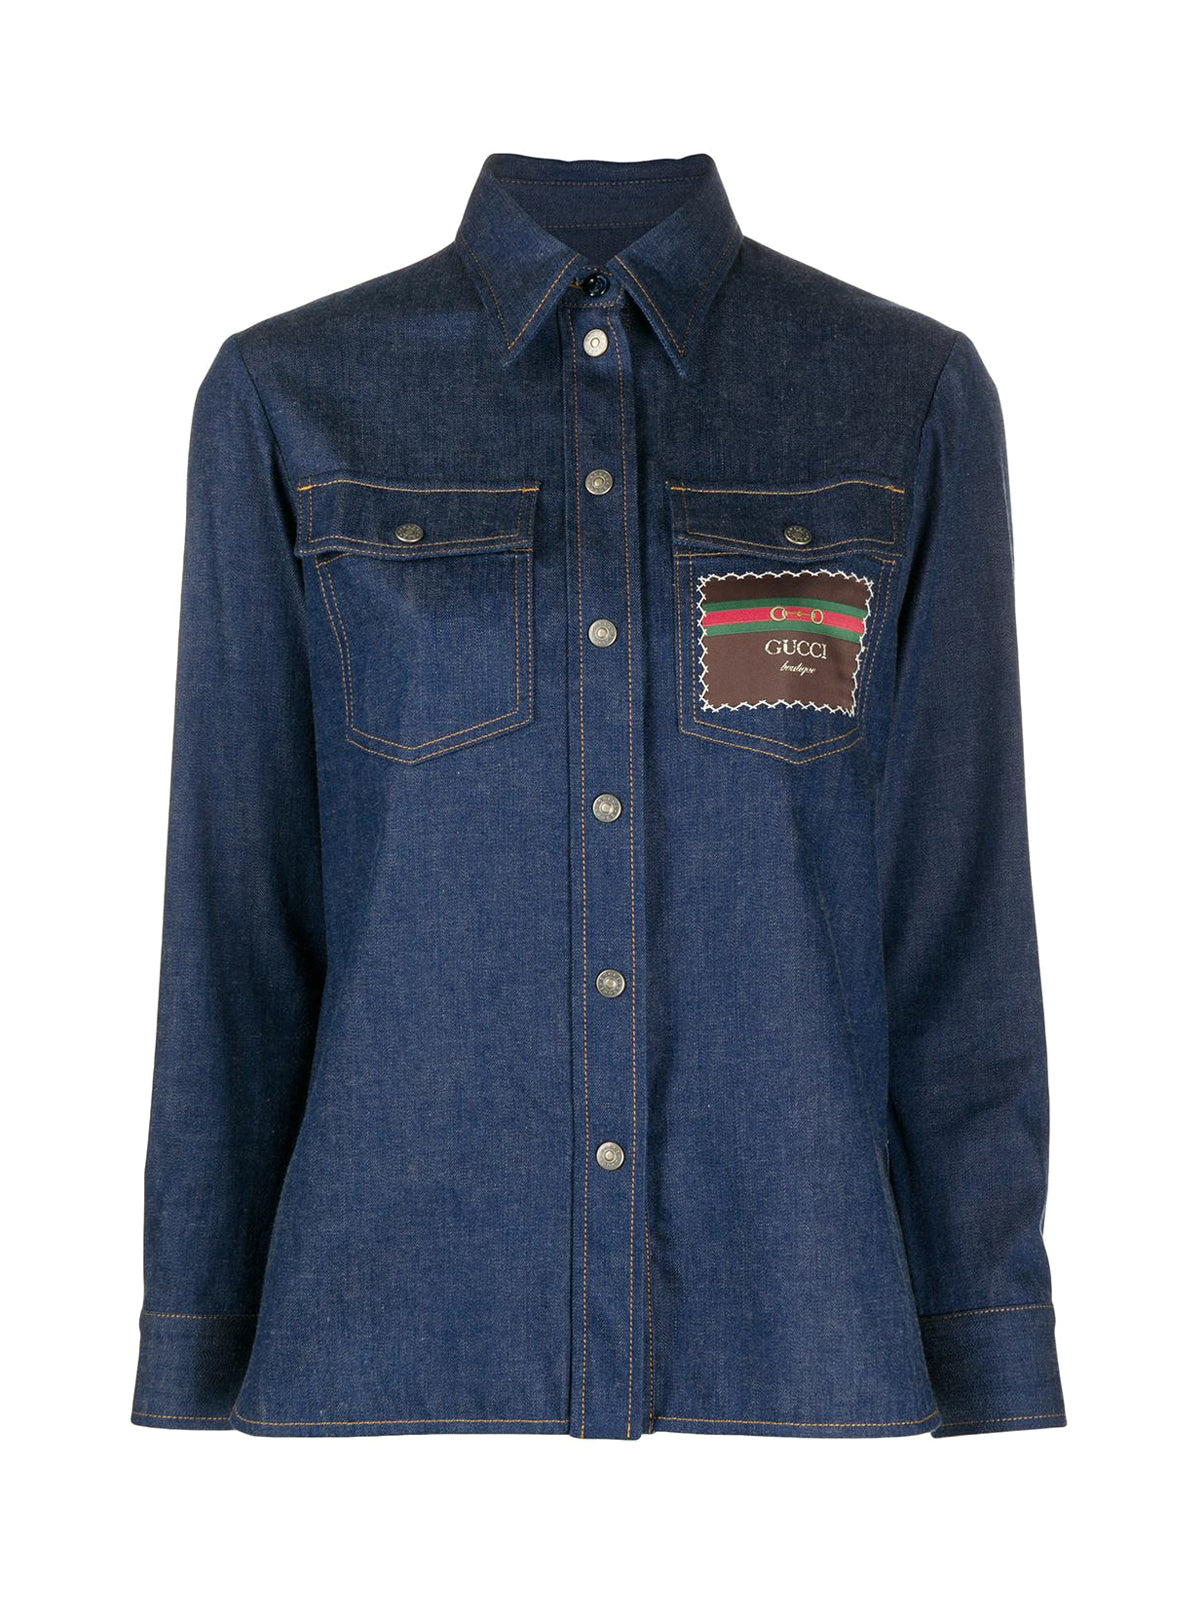 Gucci Boutique Denim Shirt